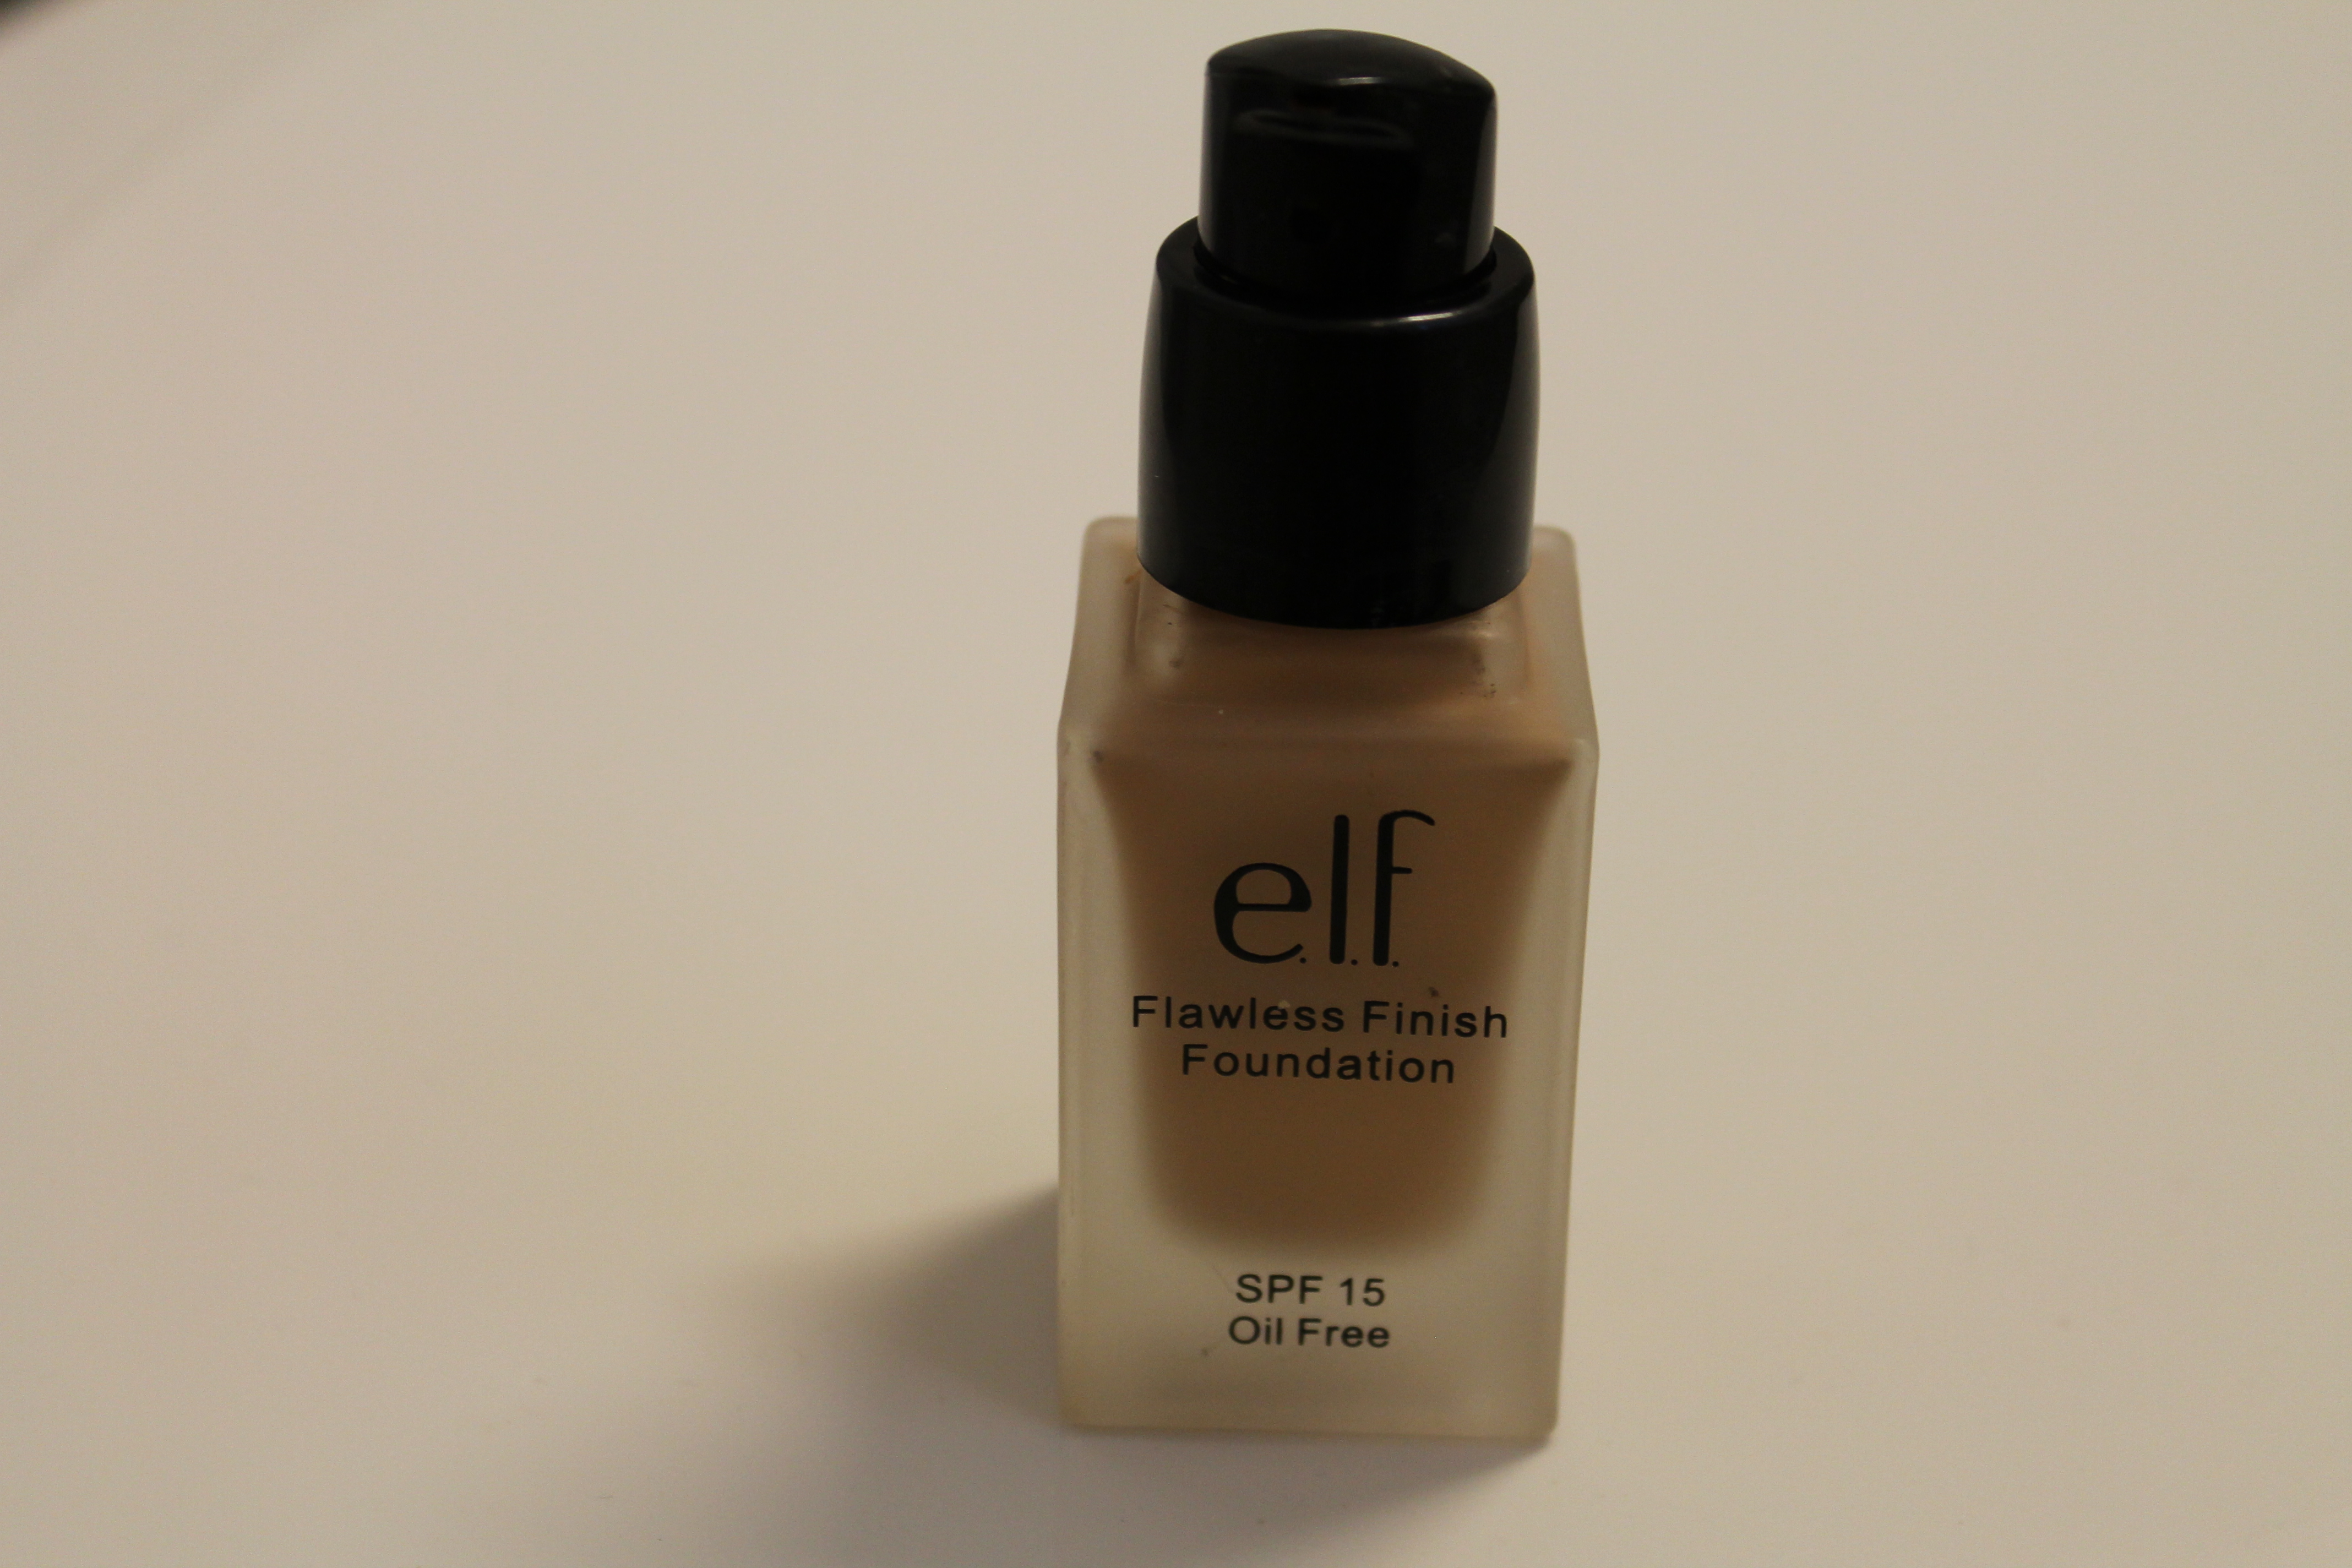 Elf Foundation Images - Reverse Search